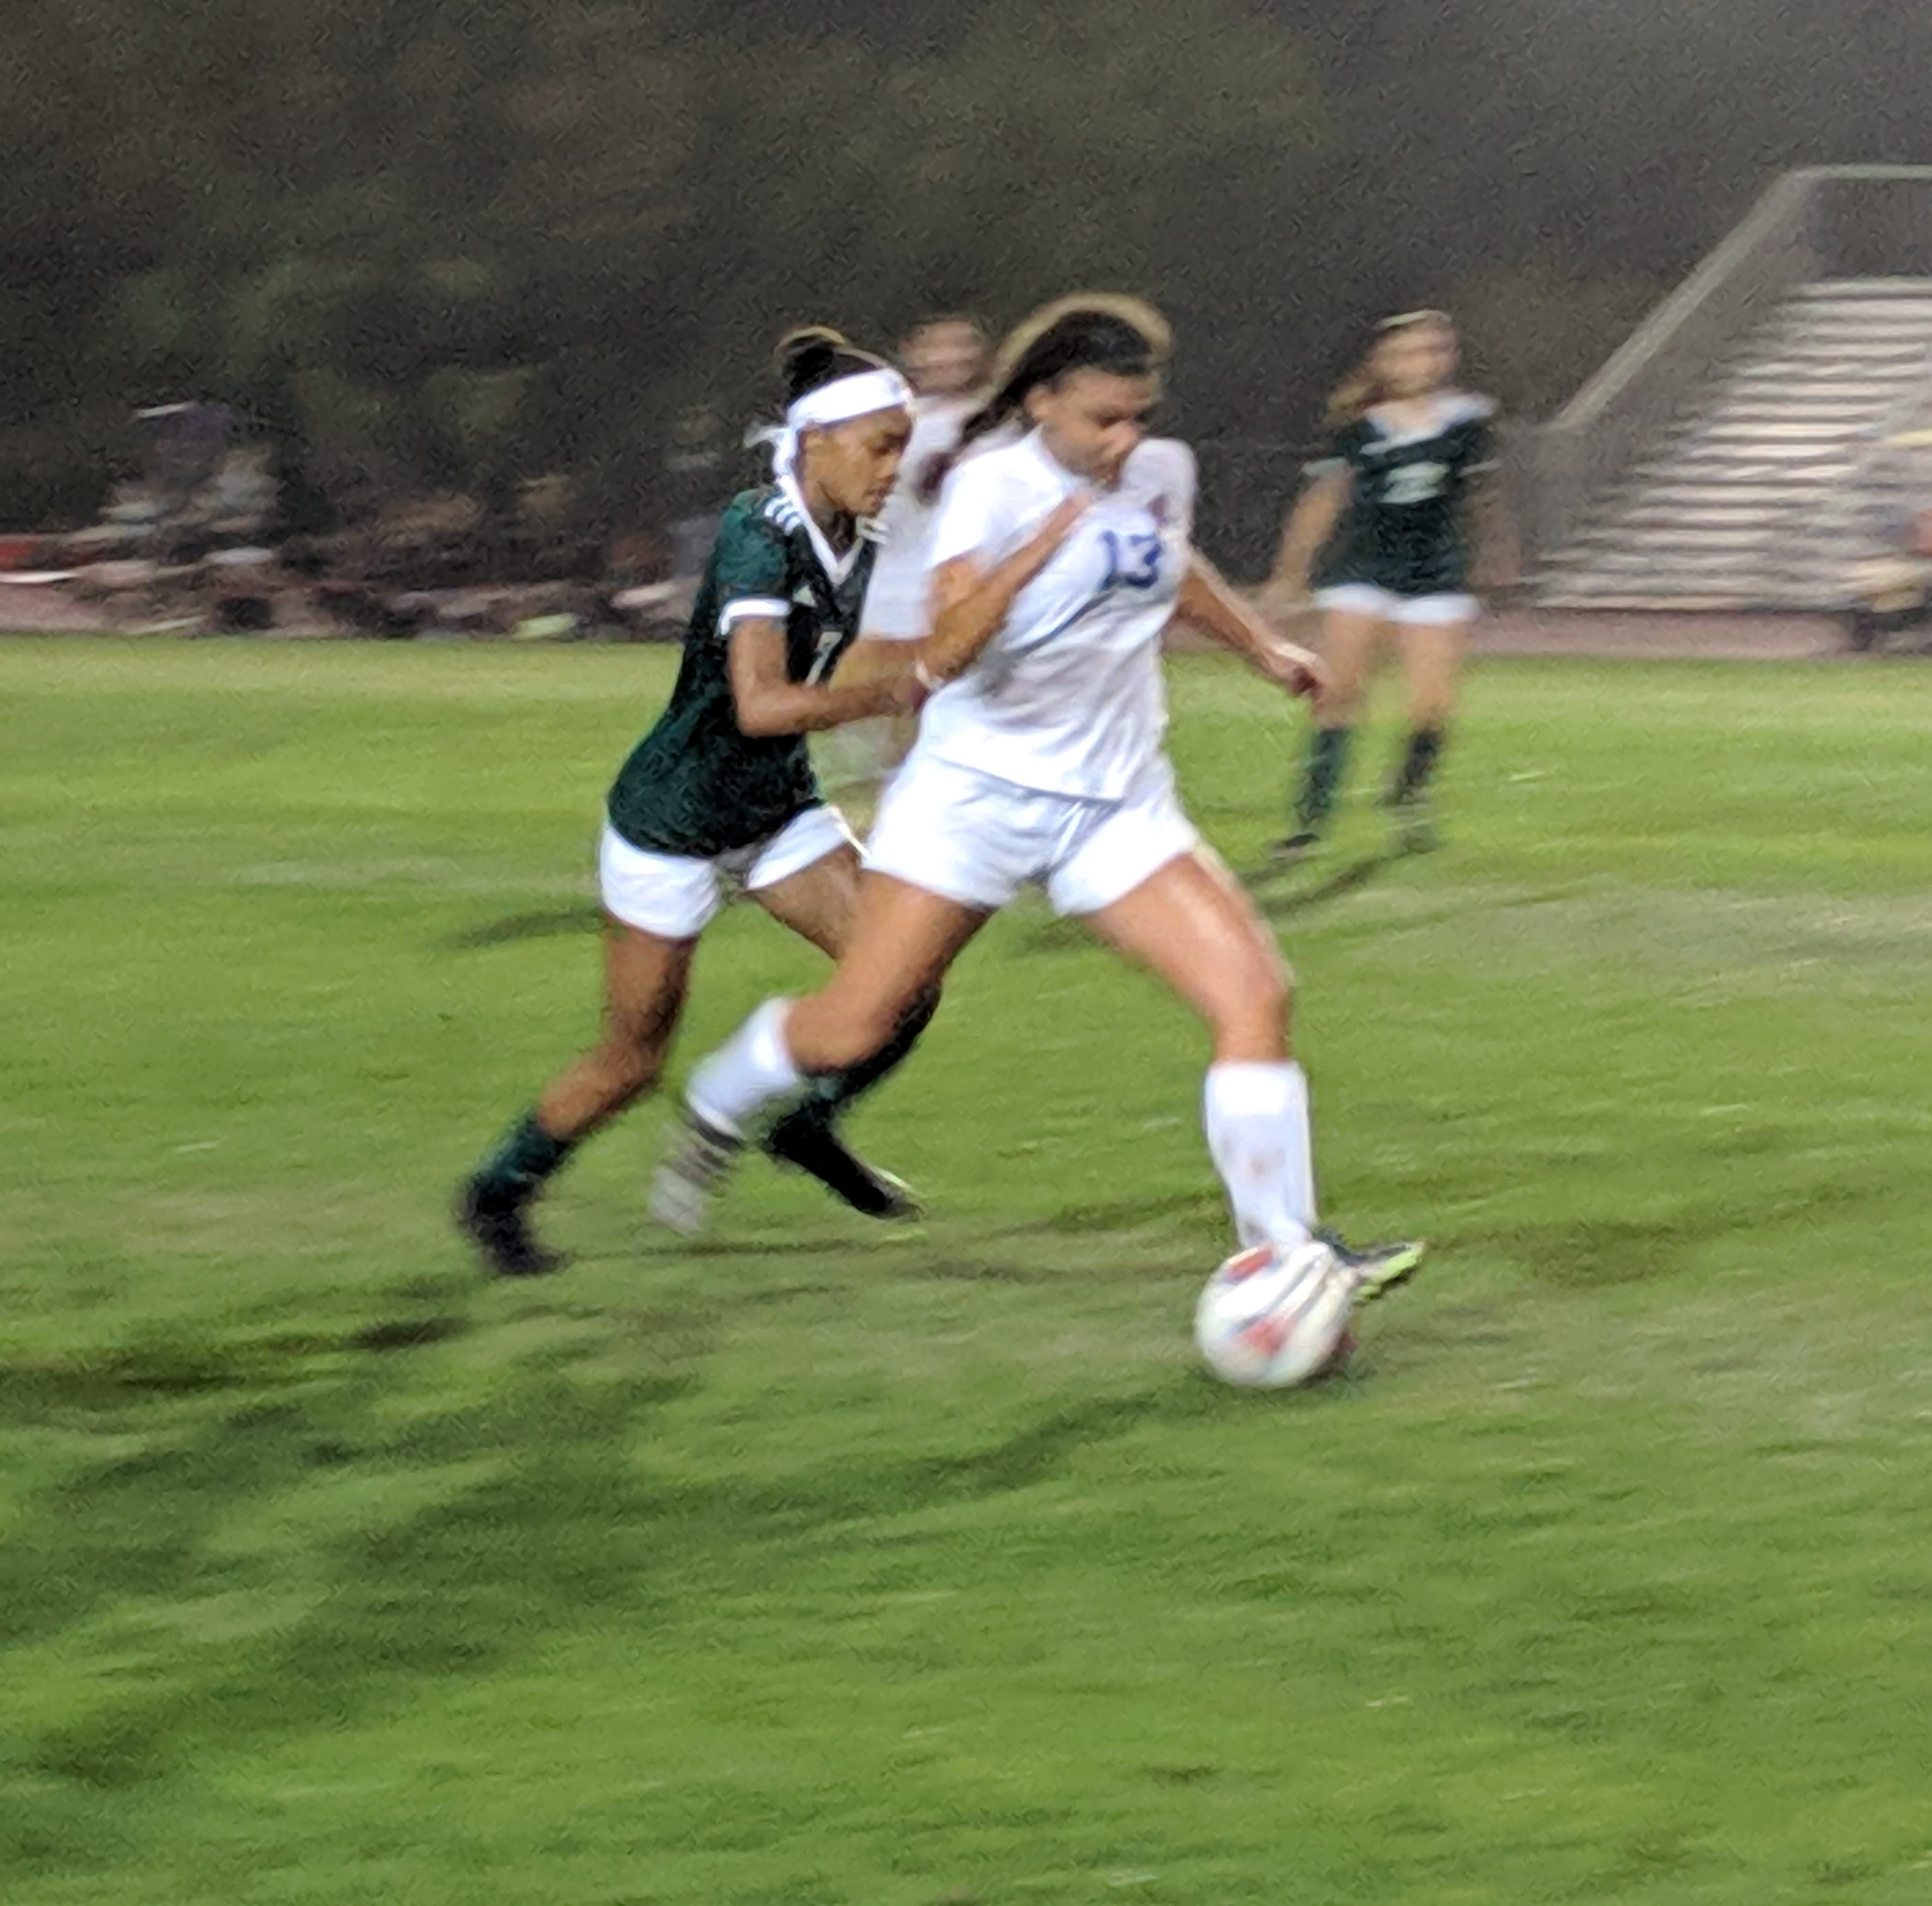 Martin County girls soccer can't hold onto lead in District 13-4A championship loss to Suncoast